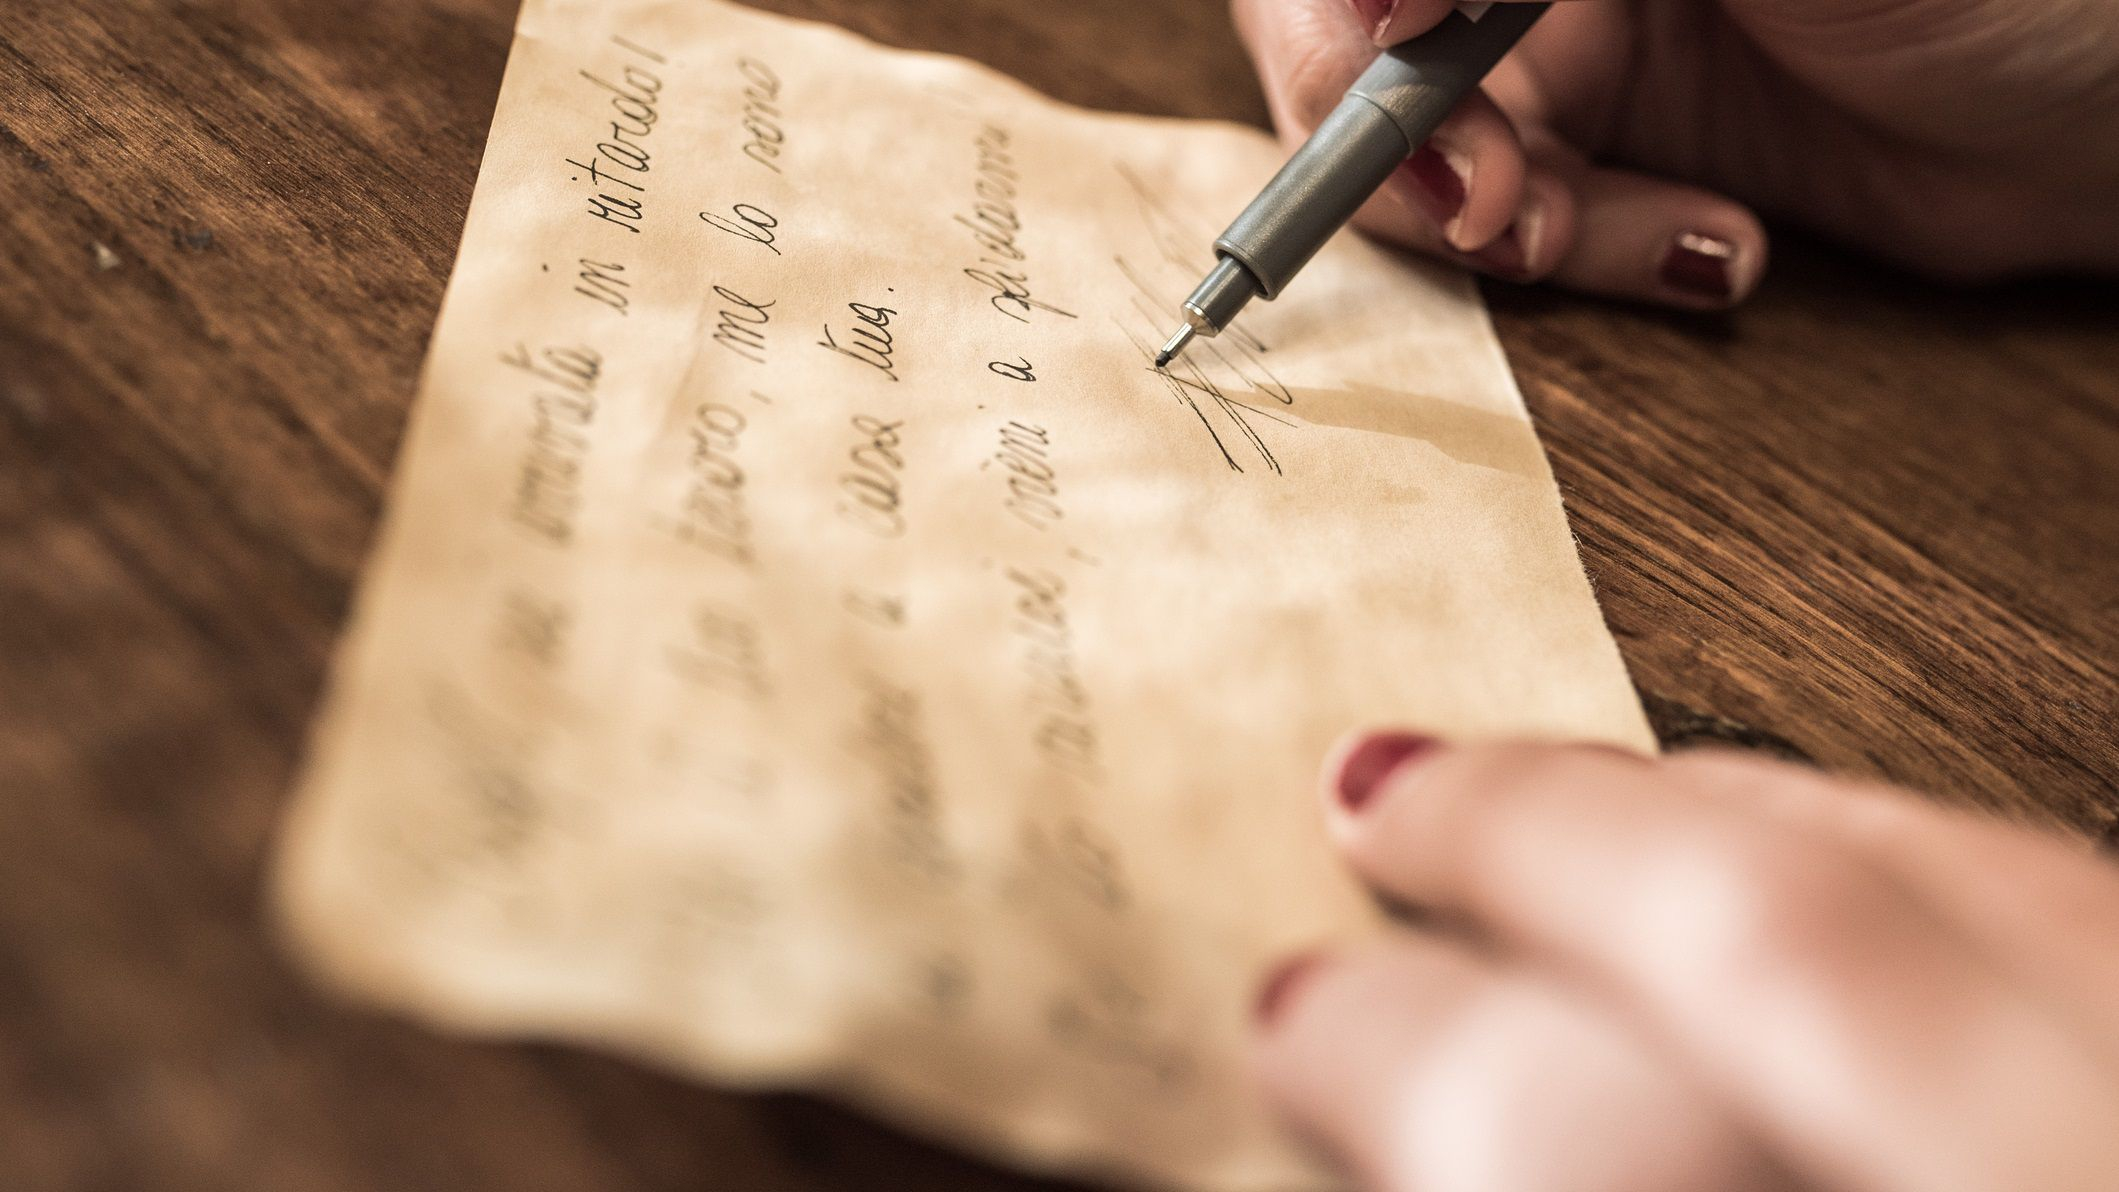 Cursive Handwriting In The United States